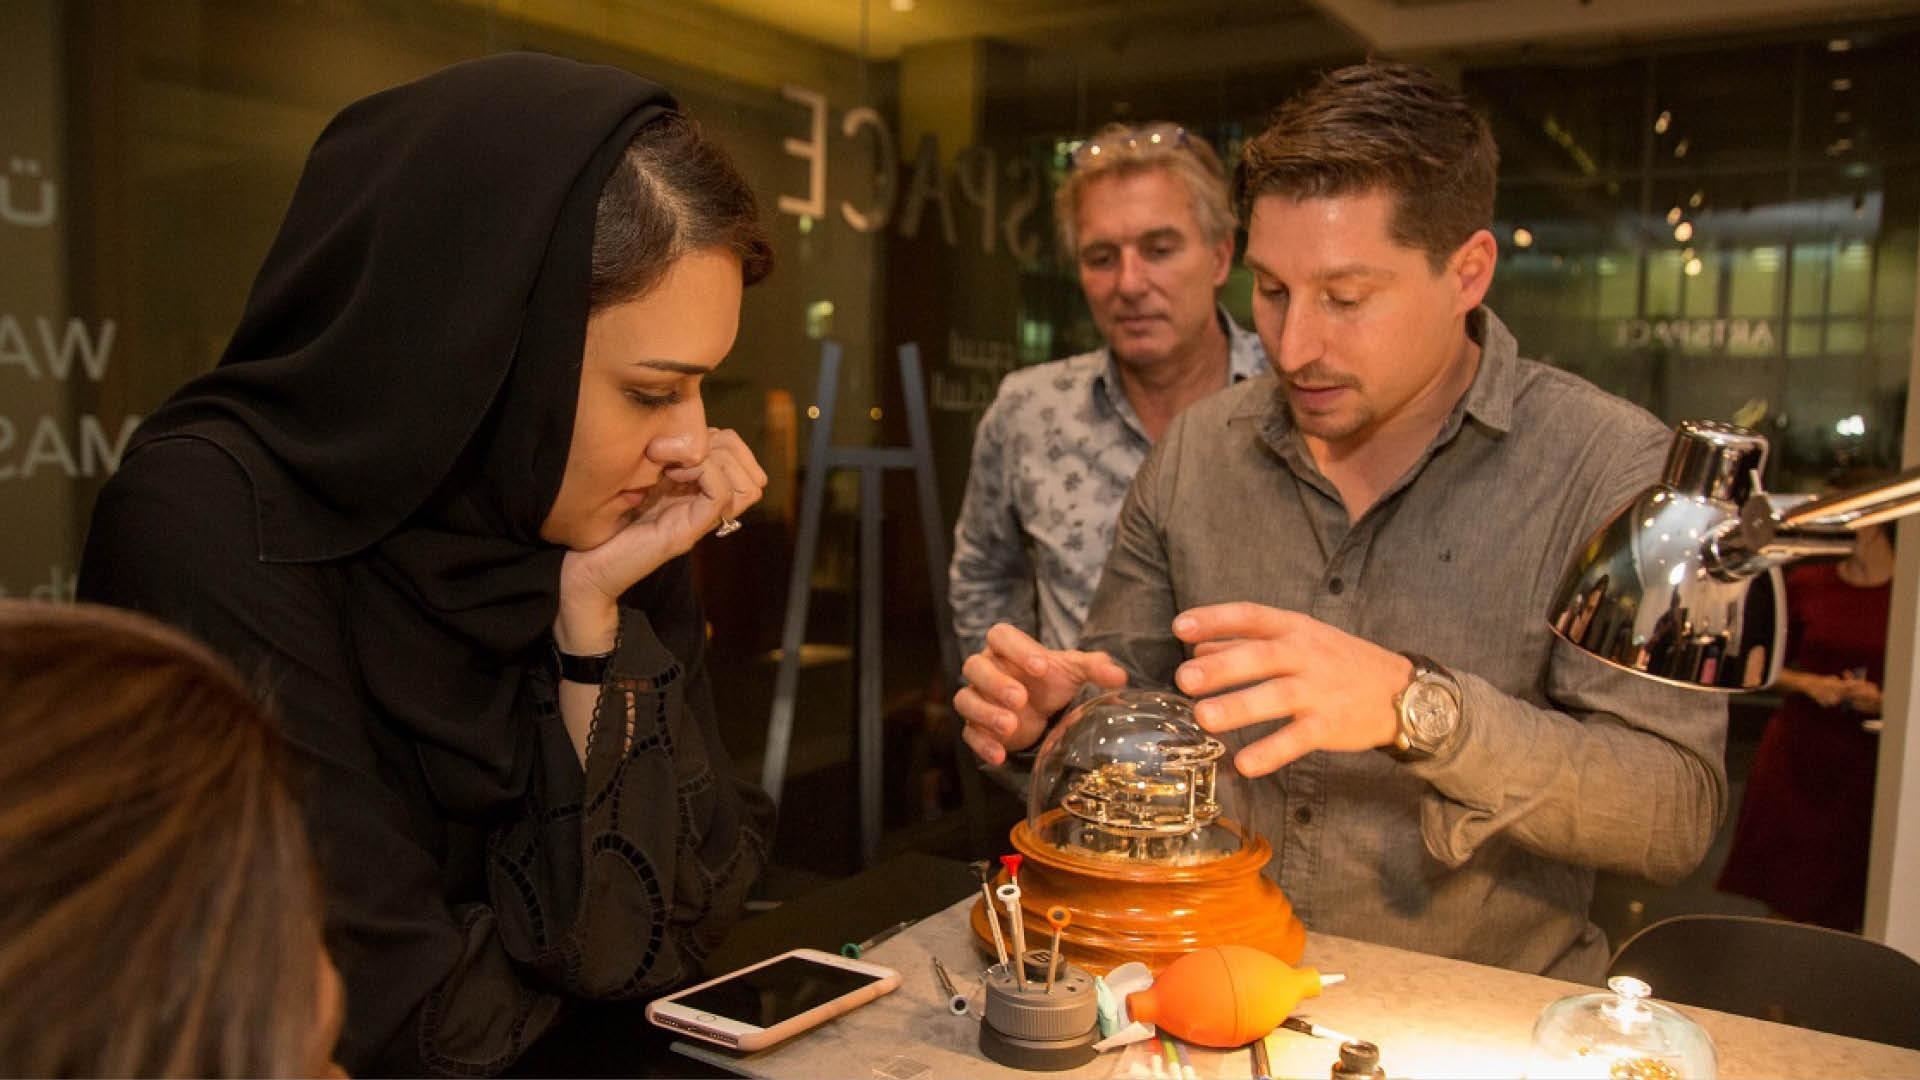 Dubai Watch Week 2017: Interview With Director Melika Yazdjerdi